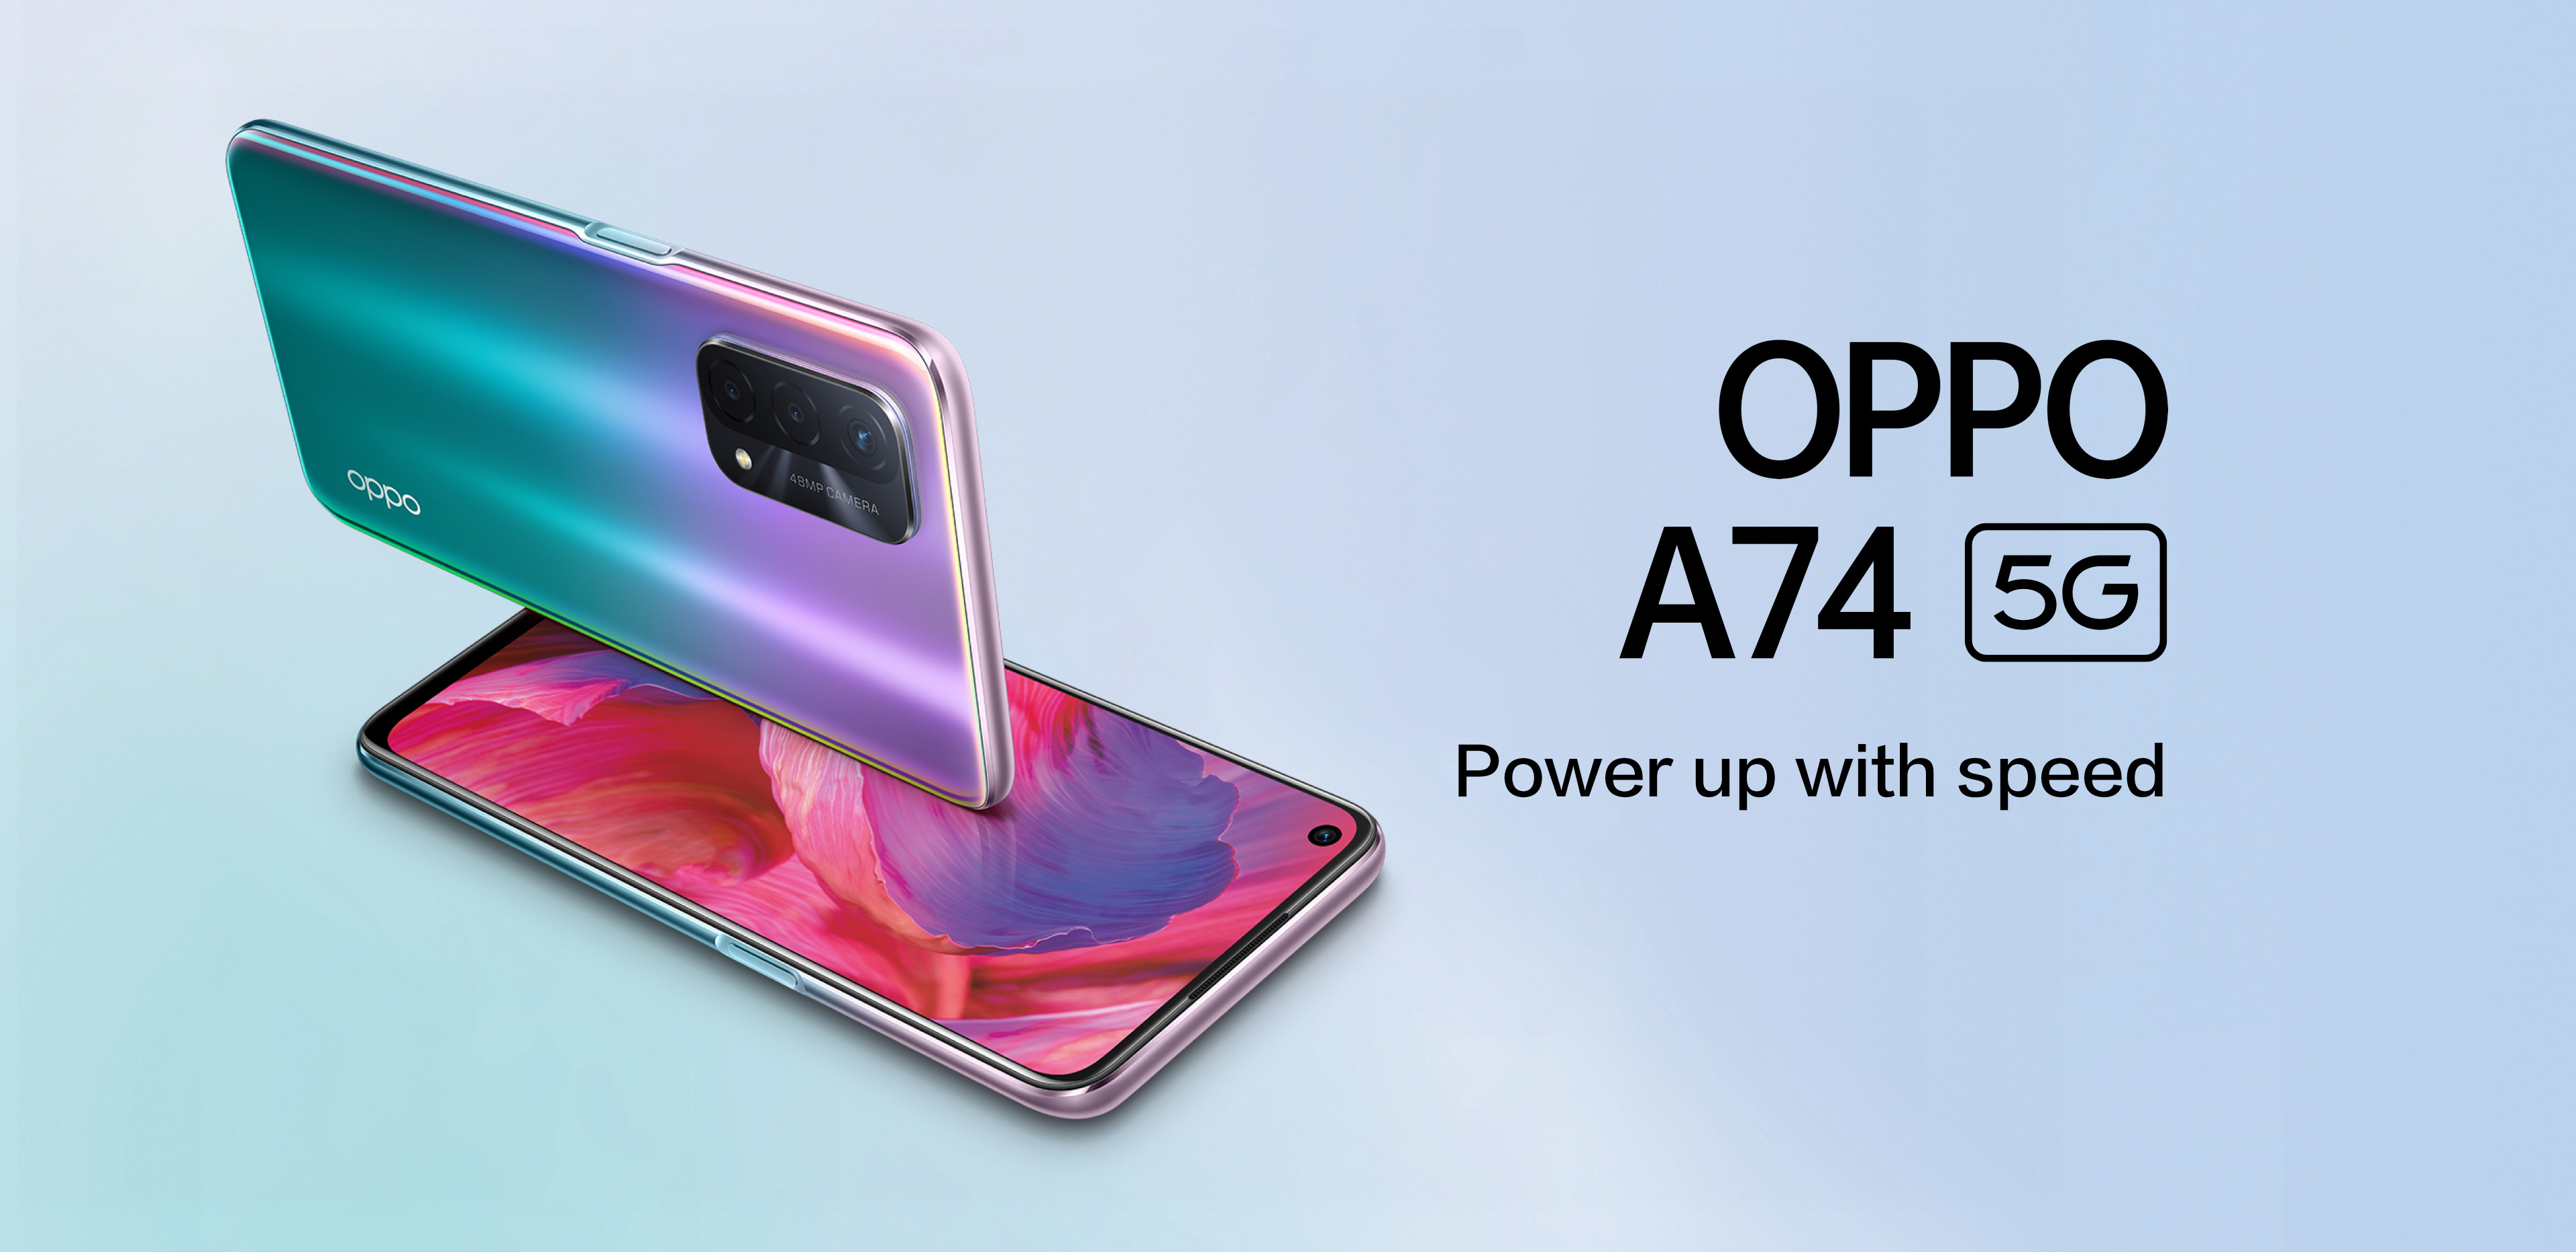 OPPO A74 5G Empowers your day